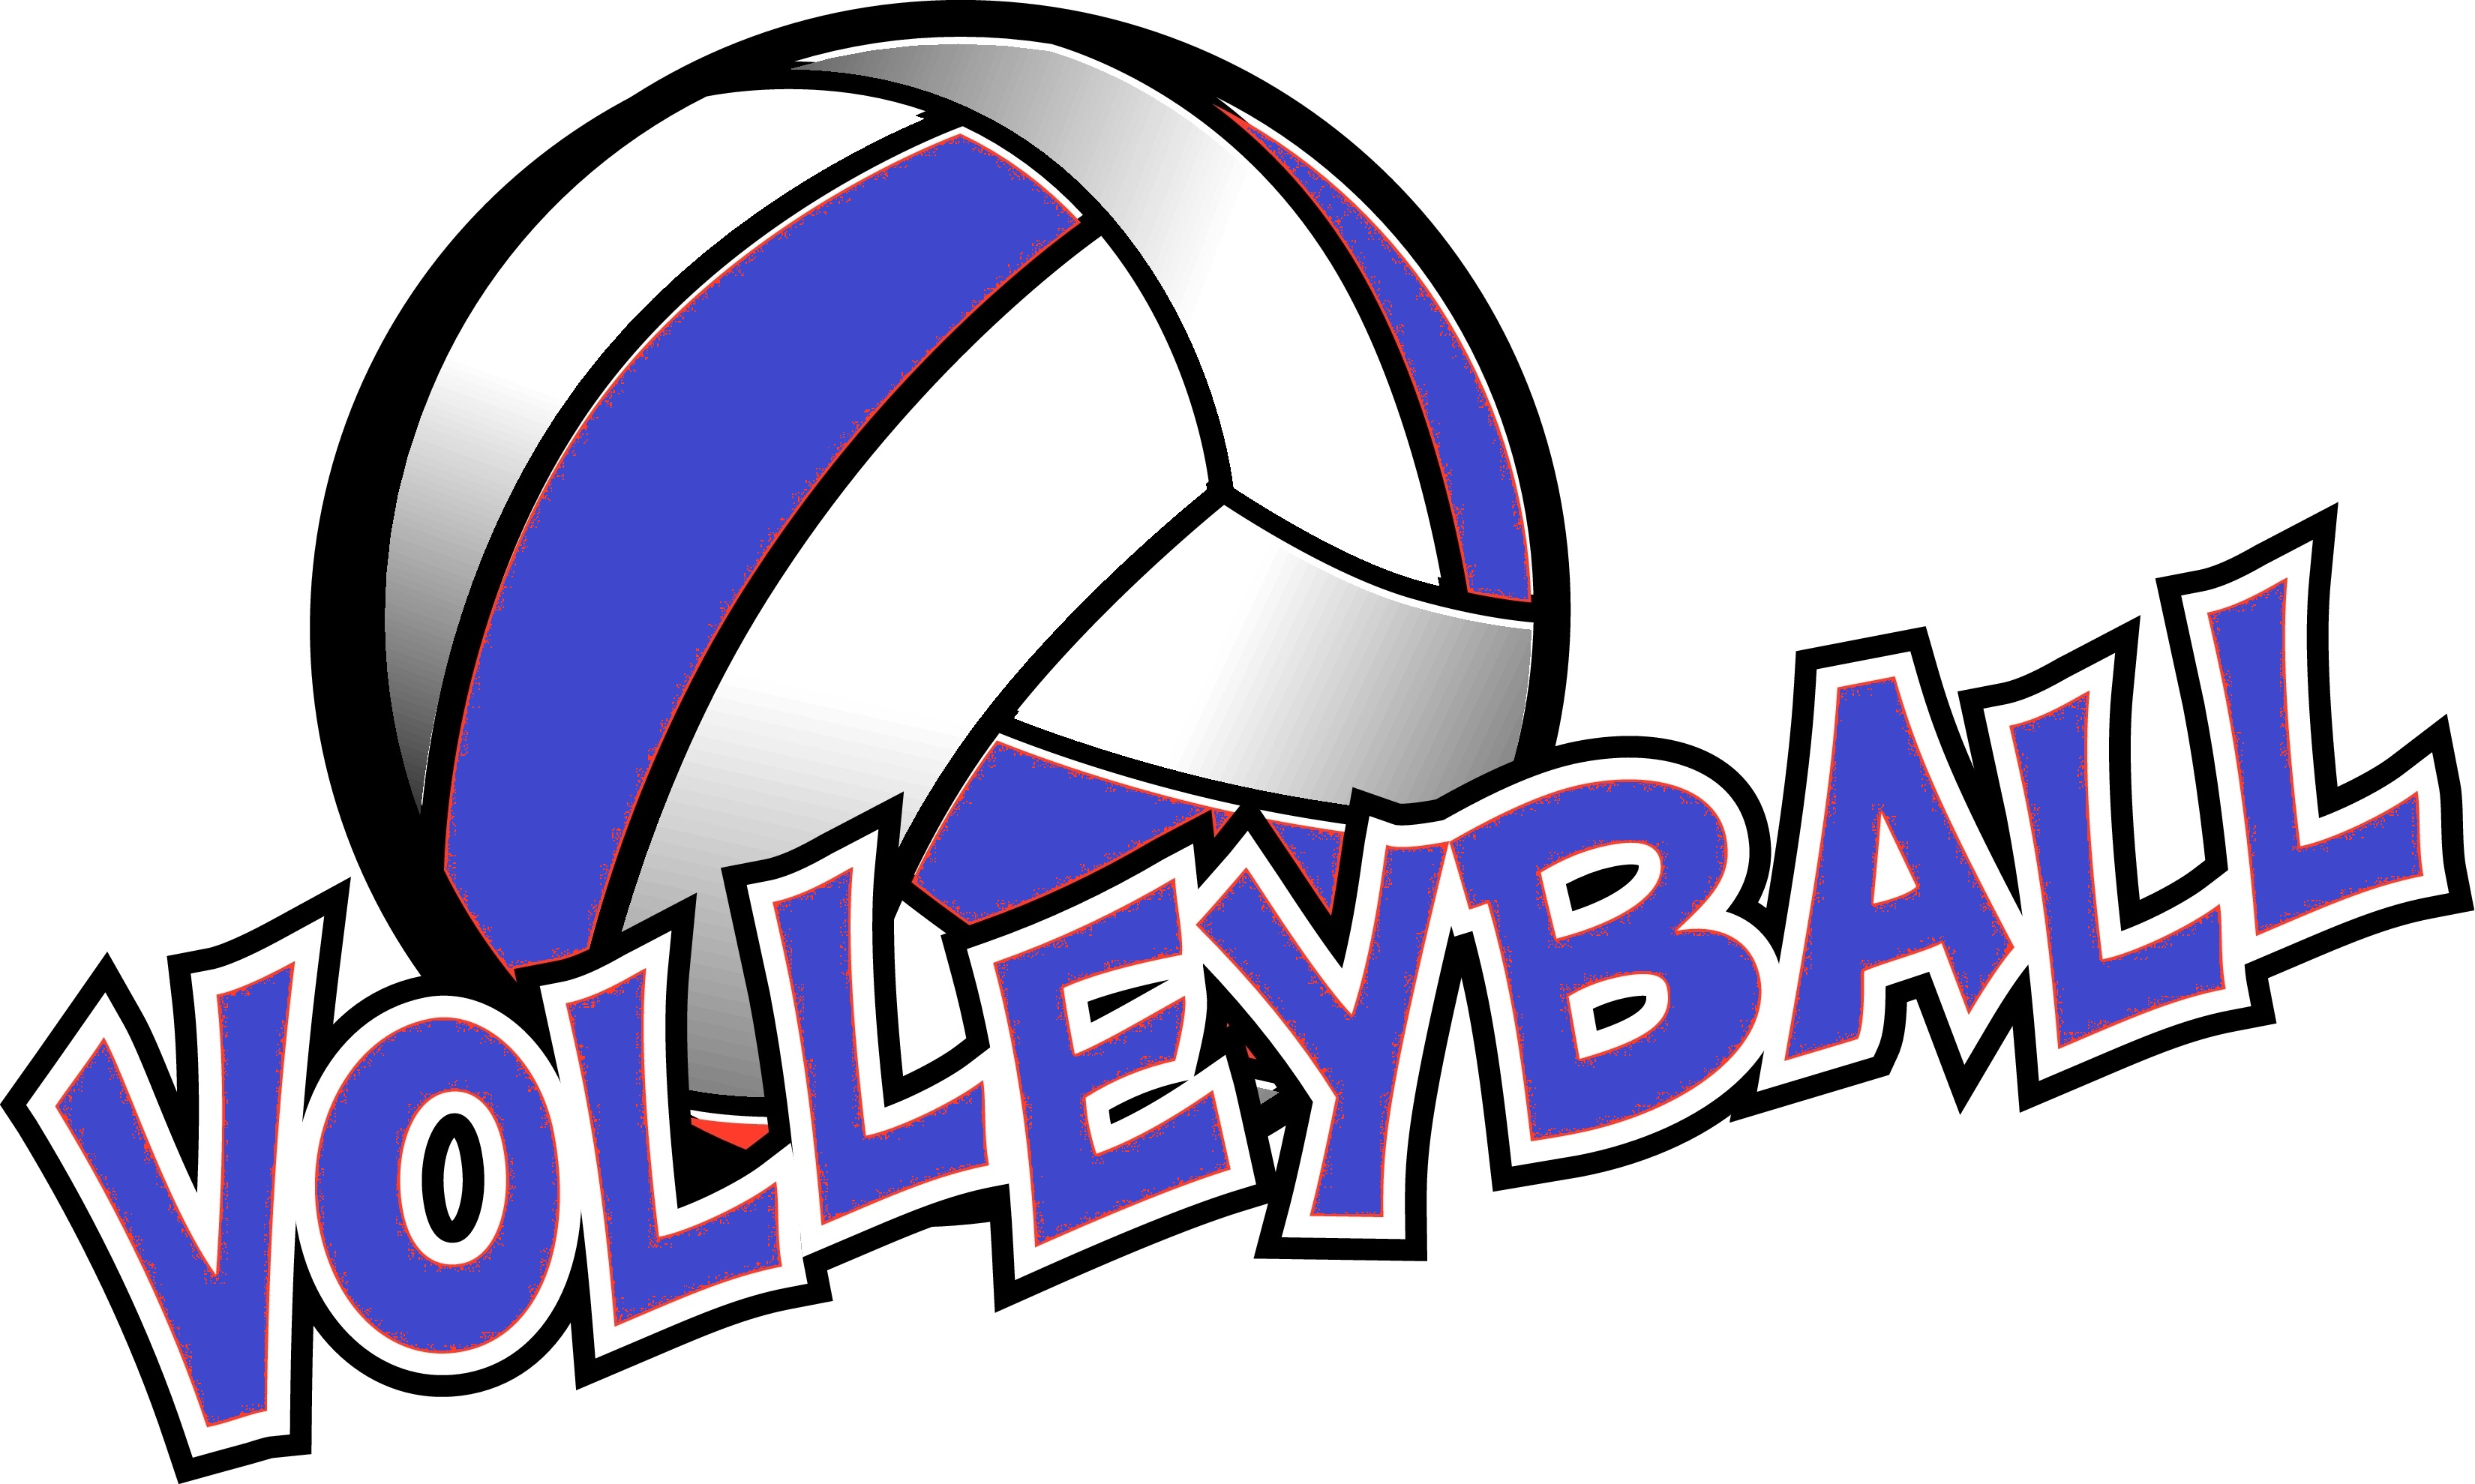 Volleyball clipart images clip royalty free library volleyball-clipart – Holy Cross clip royalty free library